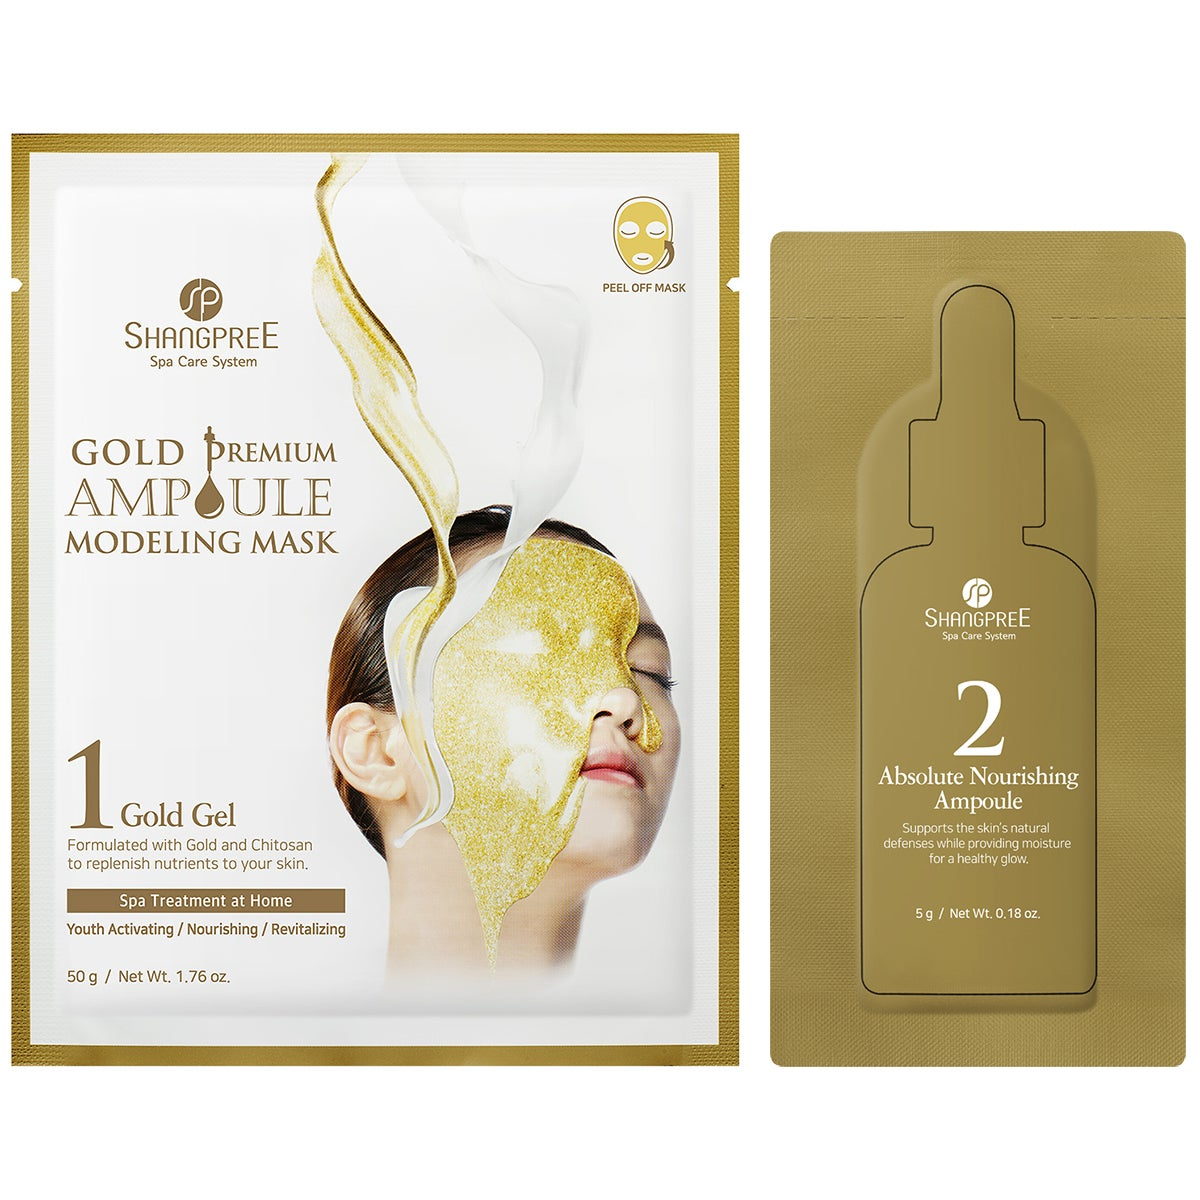 Shangpree Gold Premium Ampoule Modeling Mask